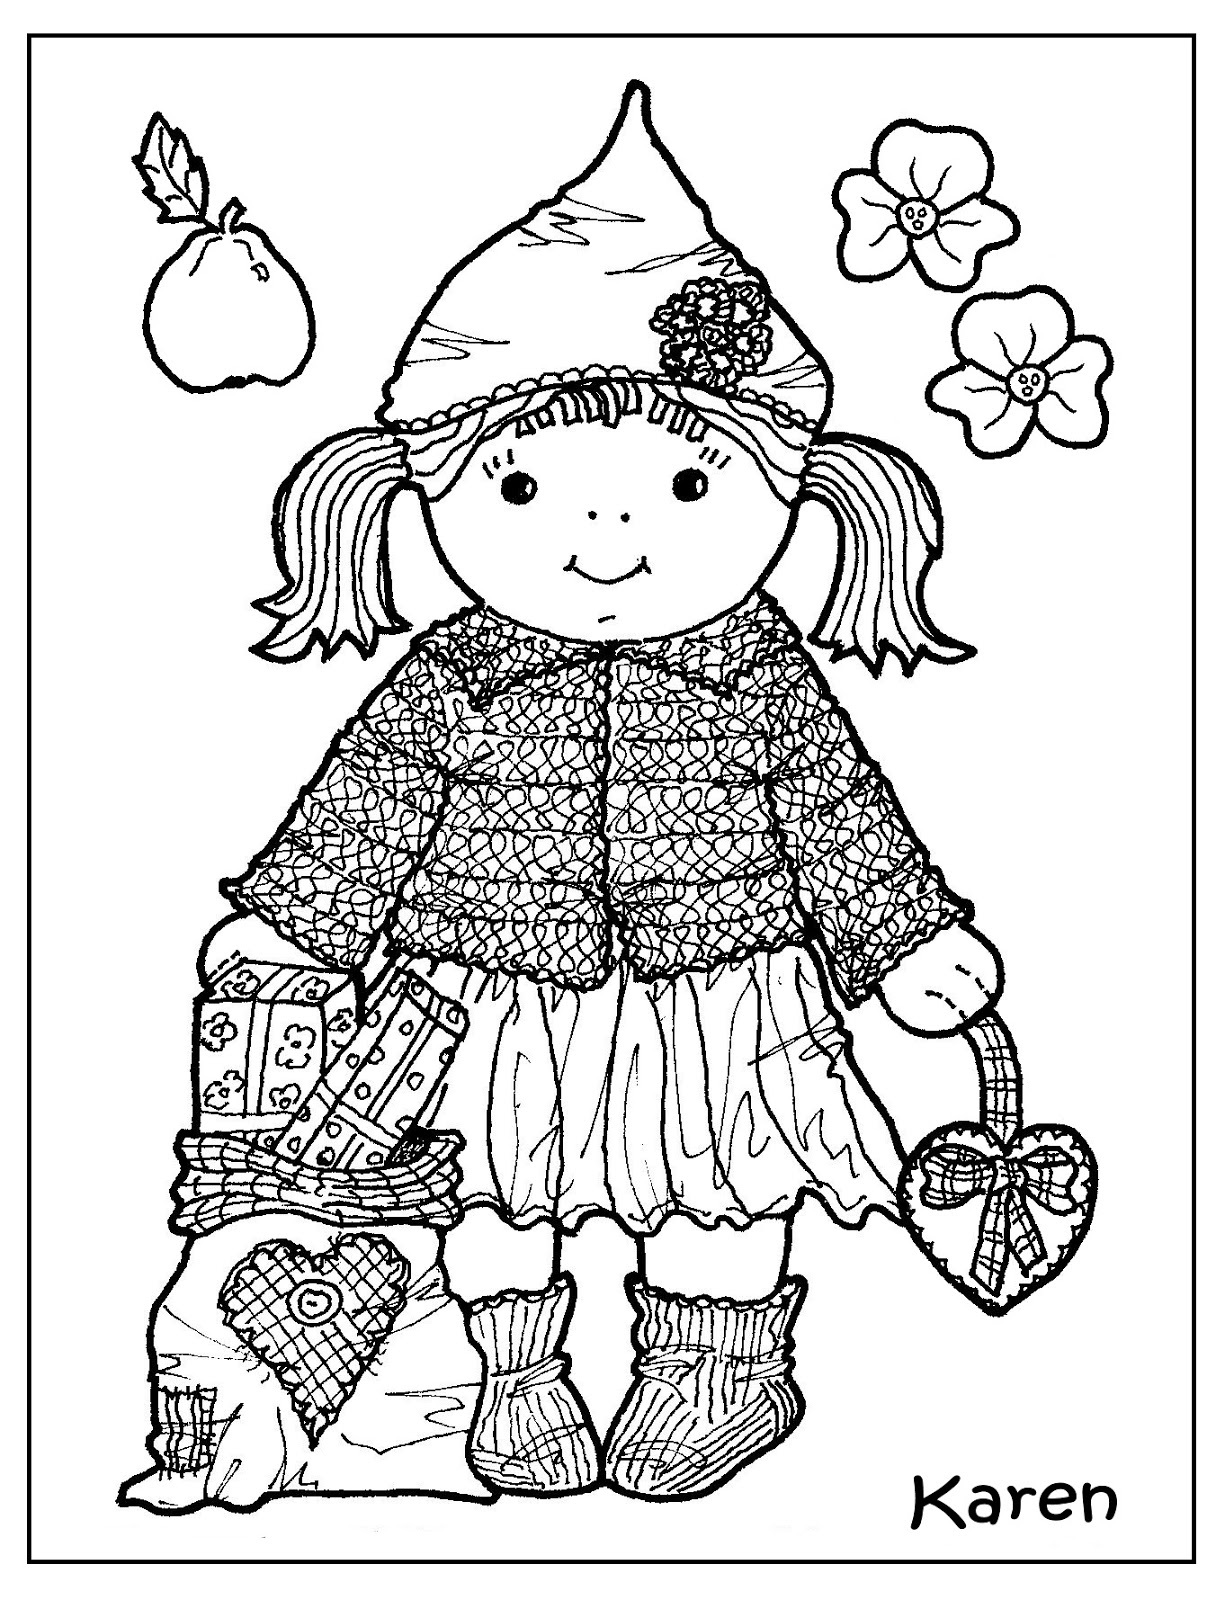 Karens Kravlenisser Cutouts and Colouring Pages